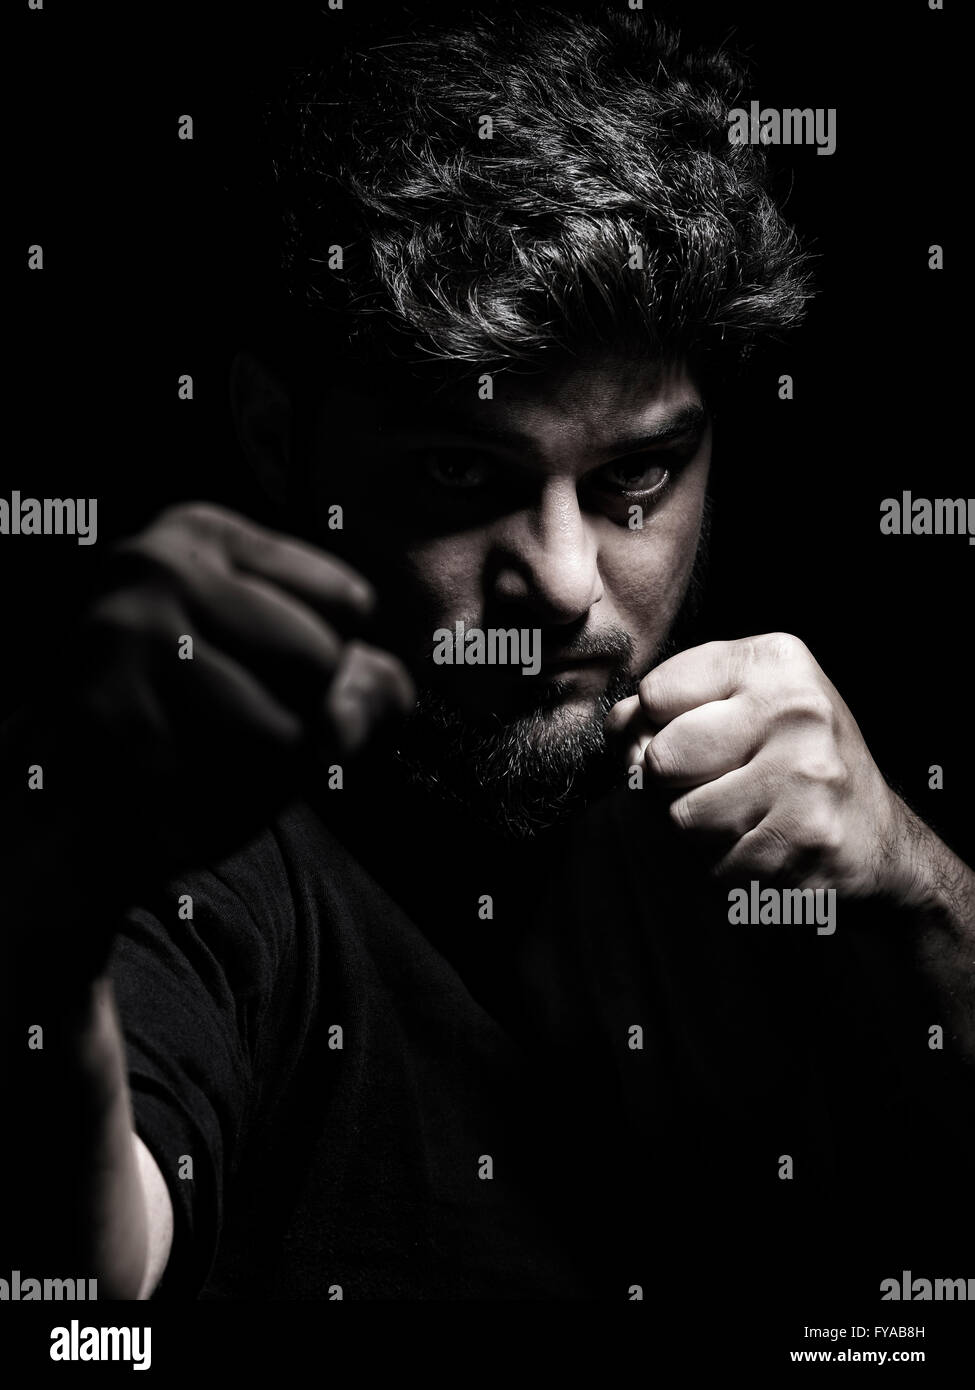 Dramatic portrait of a man in a fighting stance with fists in front of his face - Stock Image